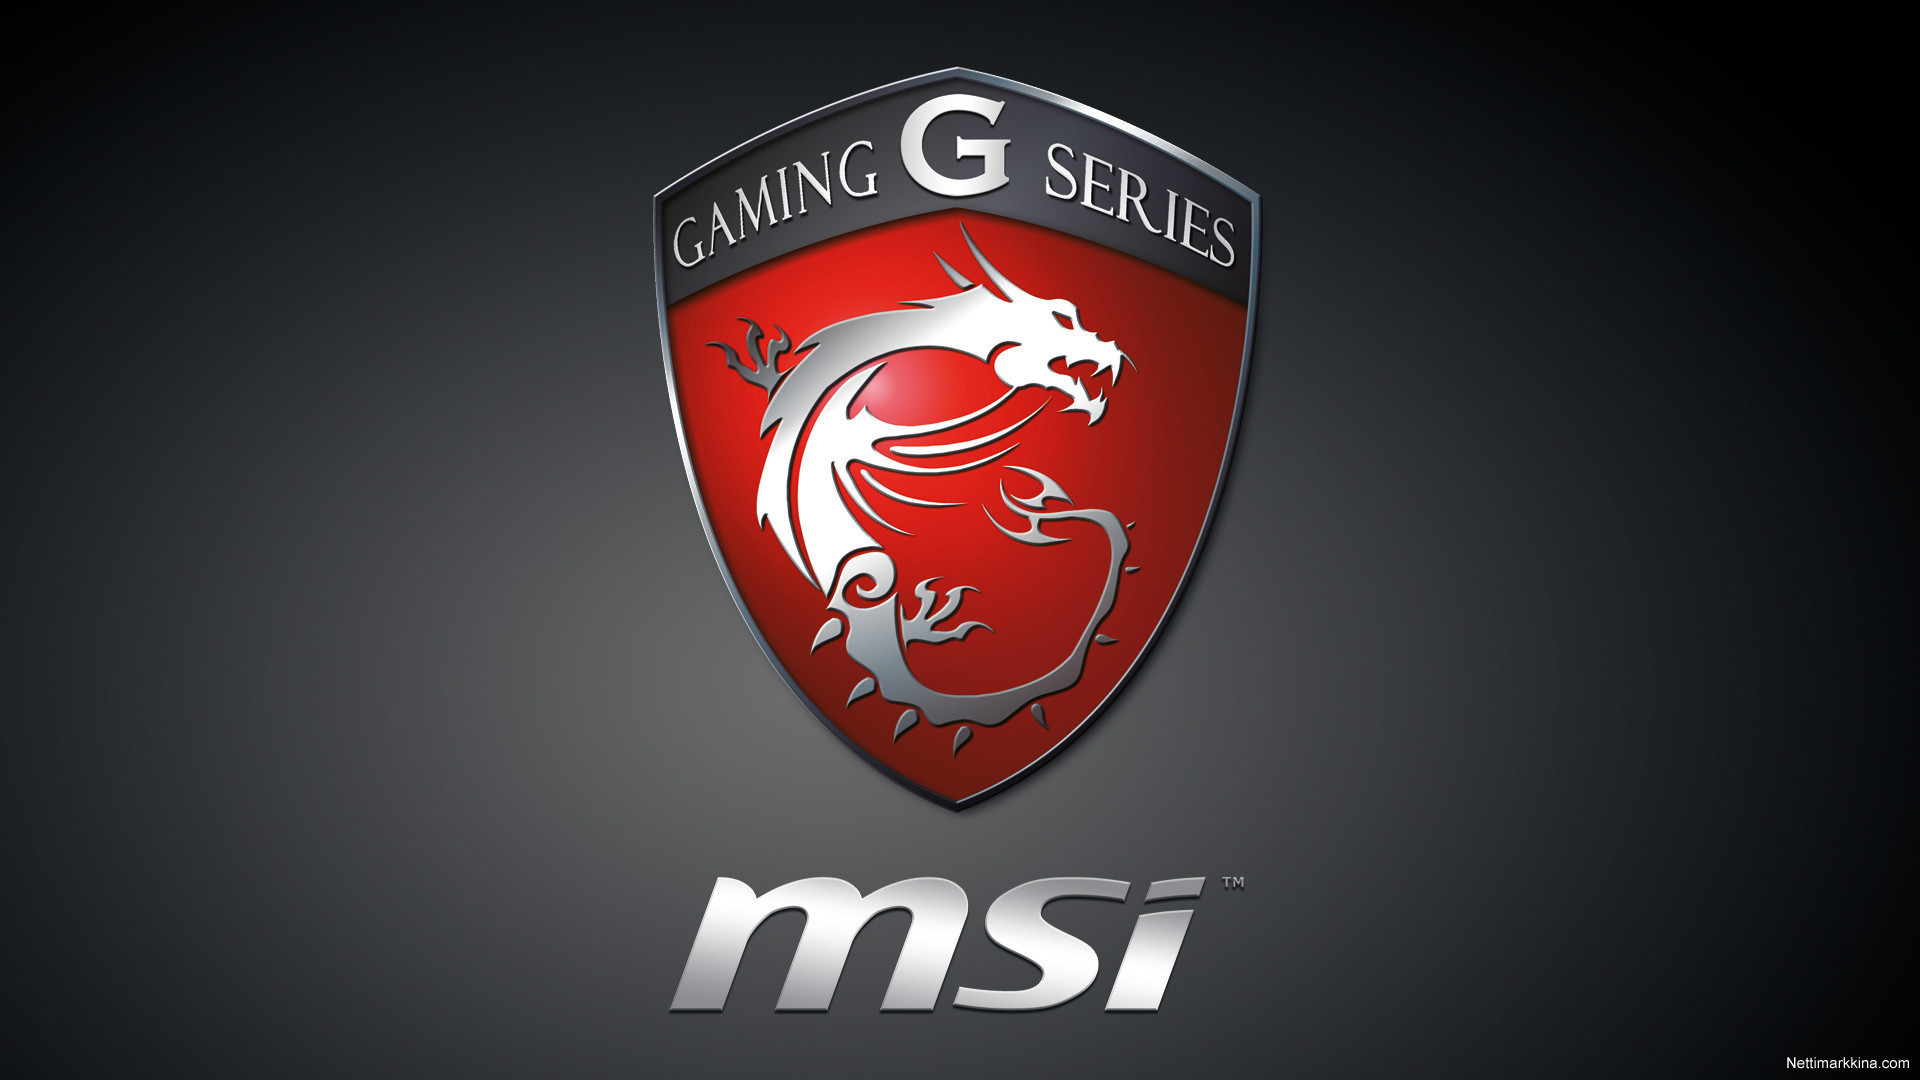 Msi 1366x768 hd wallpaper 81 images 1920x1080 pin wallpapers msi gt 1366x768 58761 on pinterest voltagebd Images